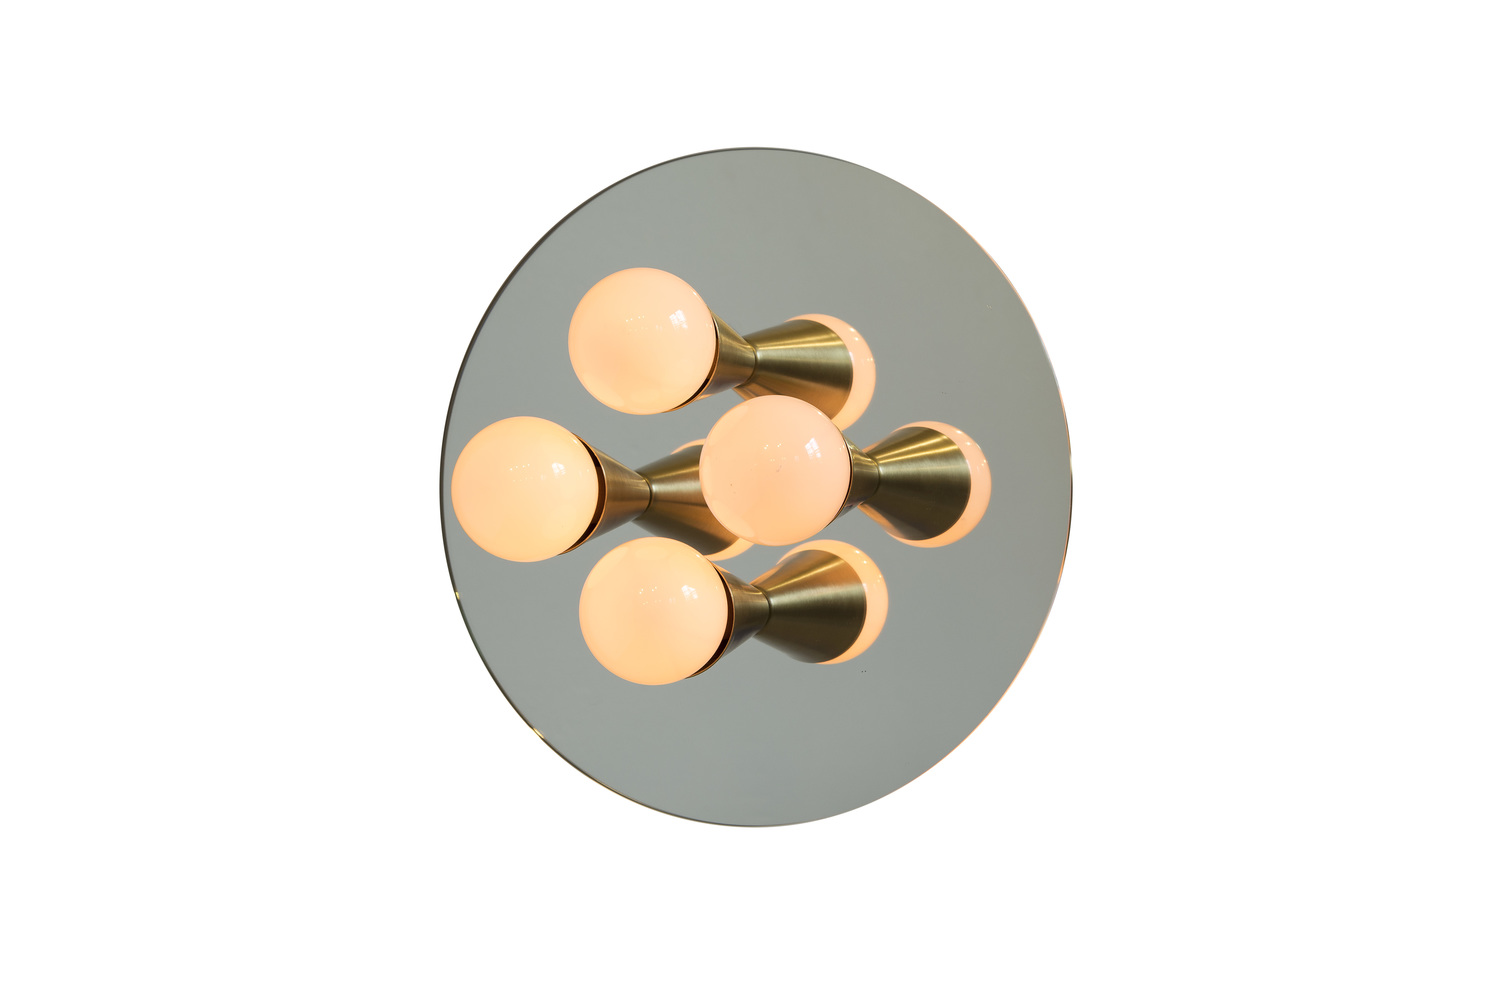 1 echo 4 brass modern mirrored sconce surface flush mount light fixture